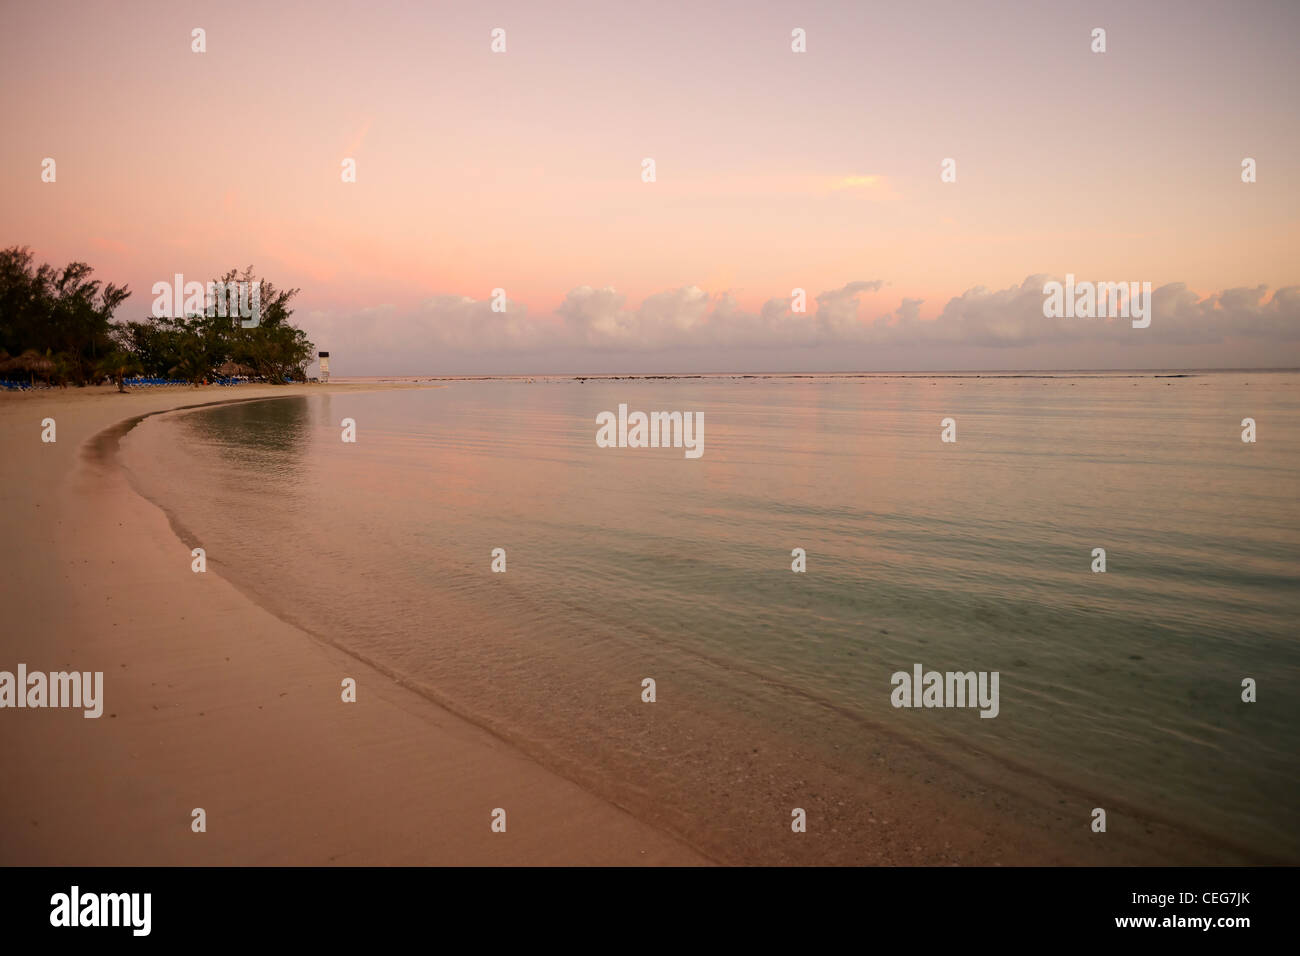 secluded Jamaican beach at sunrise - Stock Image